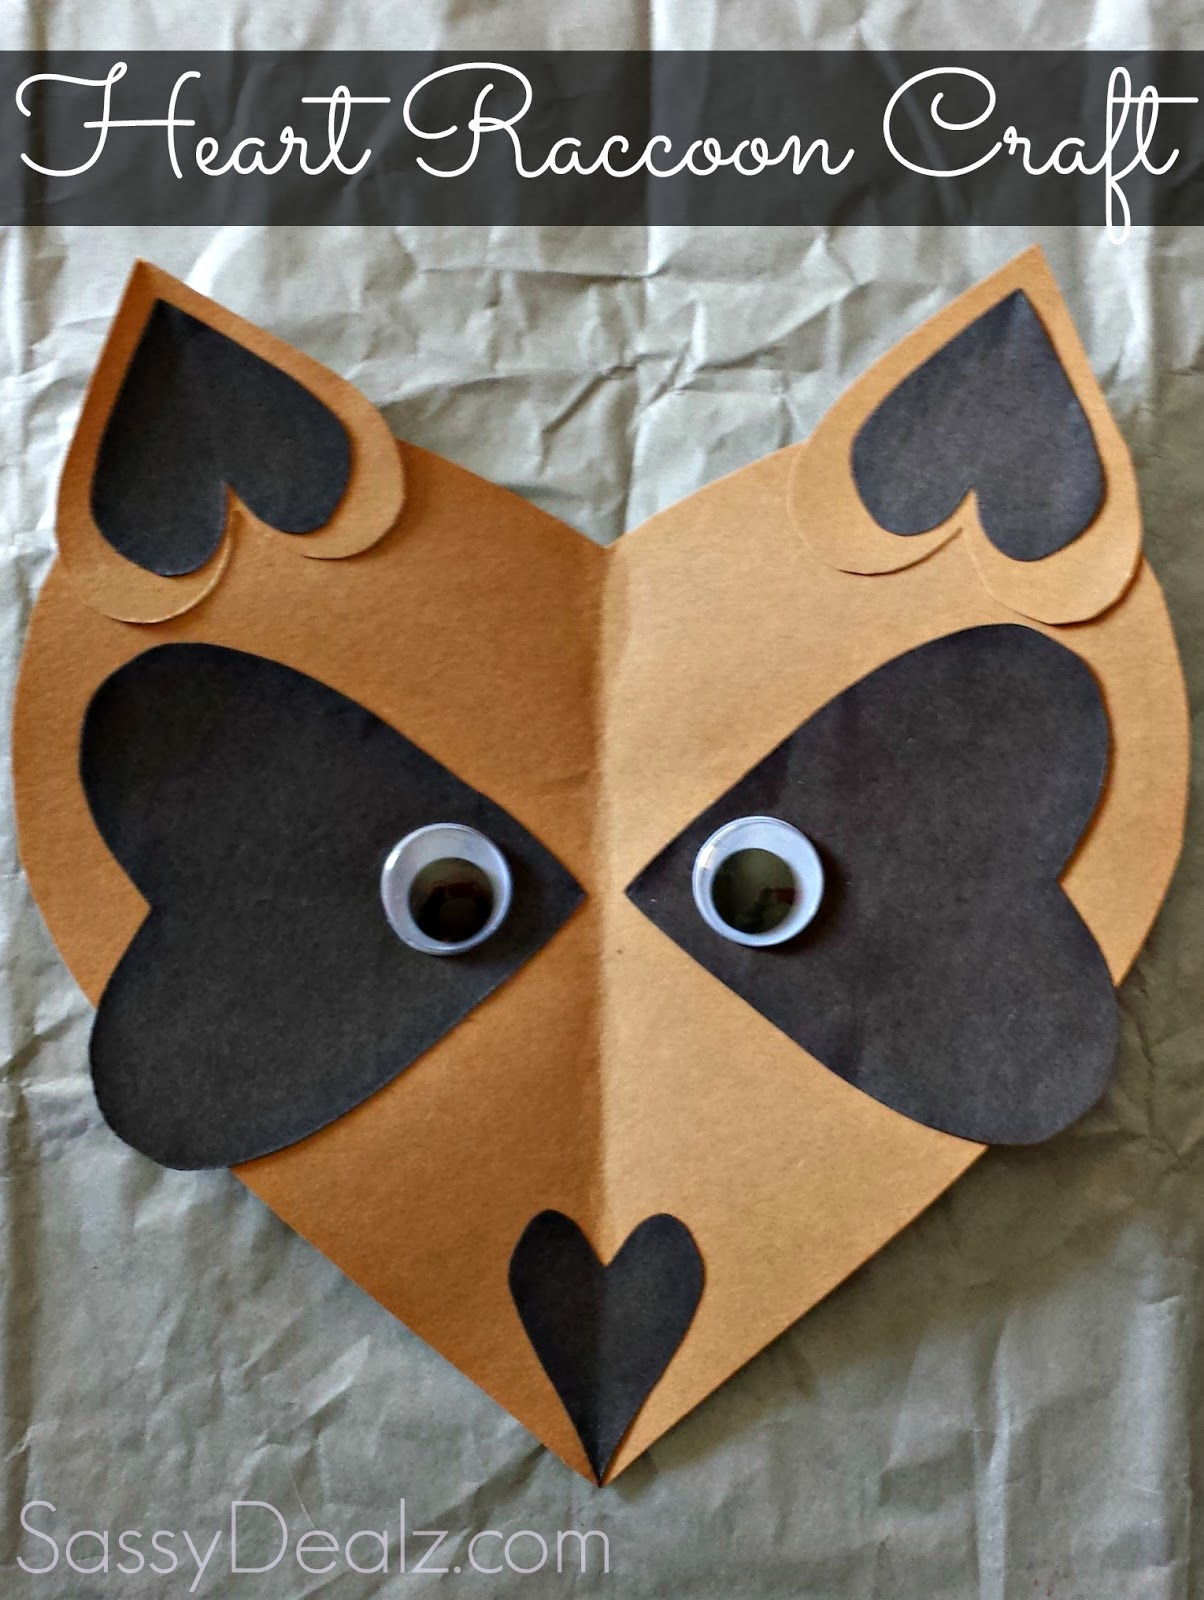 Paper Heart Raccoon Craft For Kids Crafty Morning